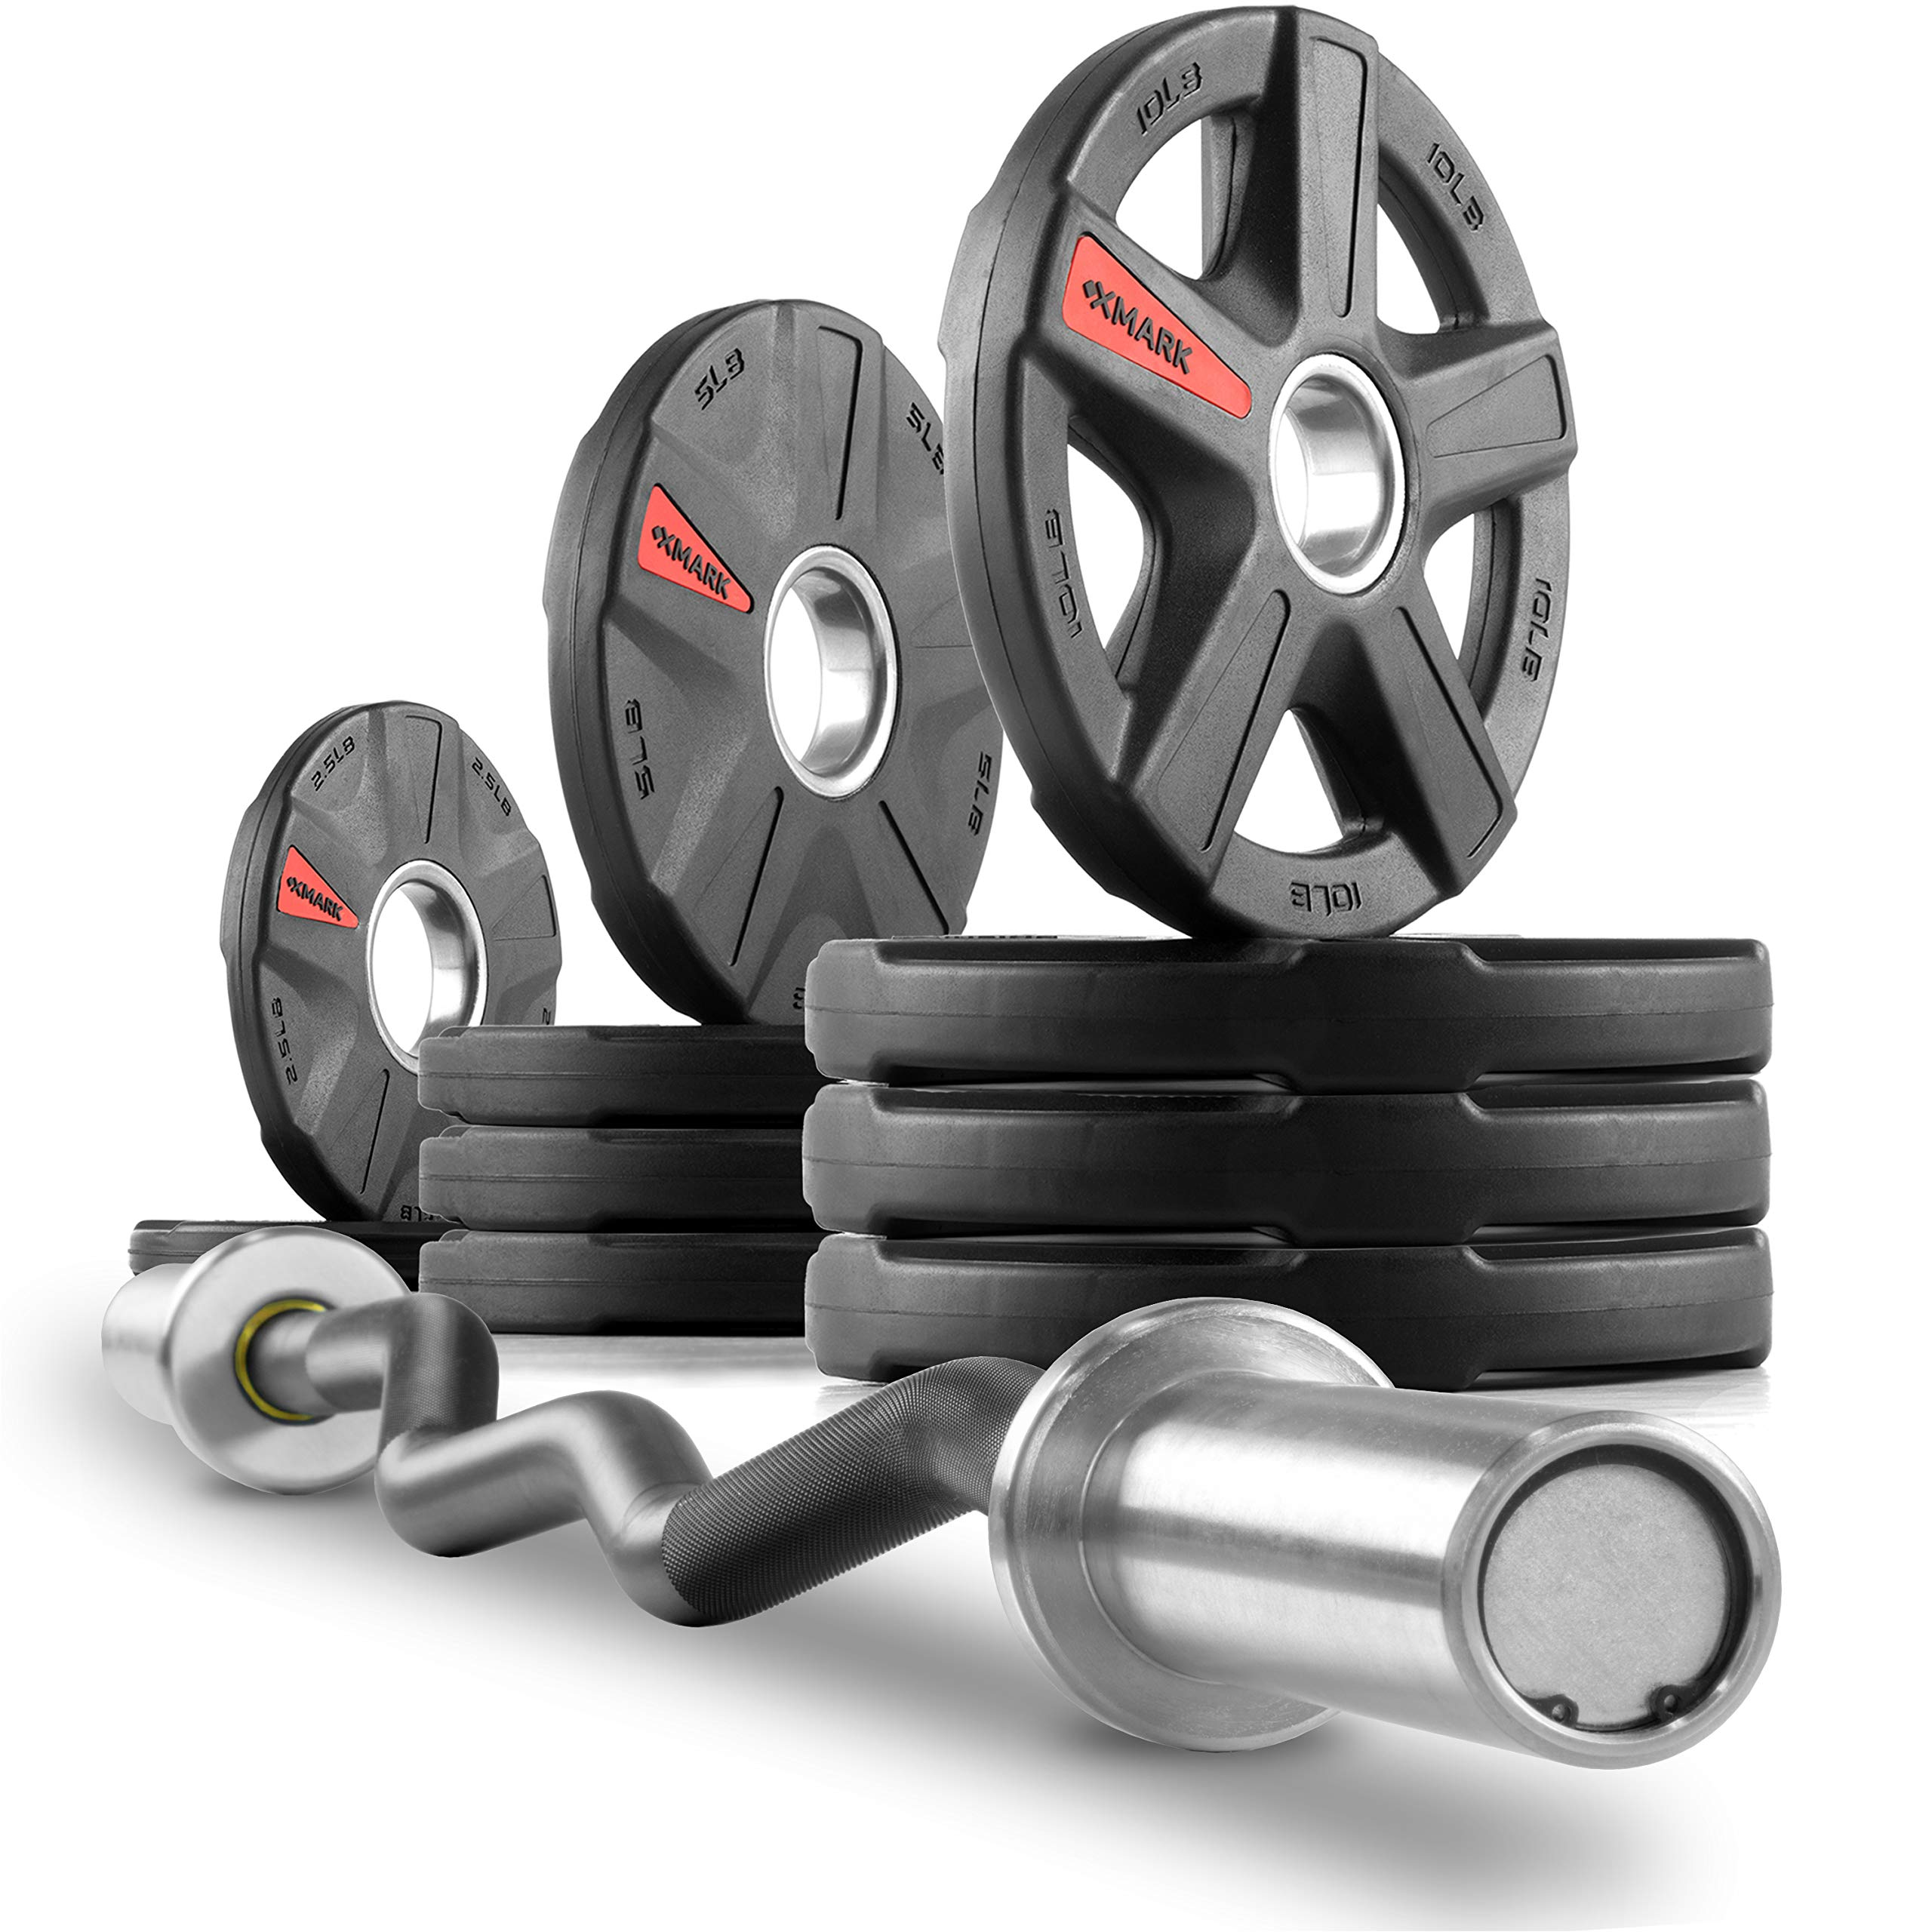 XMark Commercial Hard Chrome Olympic EZ Curl Bar Brass Bushings with Texas Star 65 lb. Olympic Plate Weight Set, Great for Bicep Curl and Triceps Extension, Can Be Used with Preacher Curl Bench